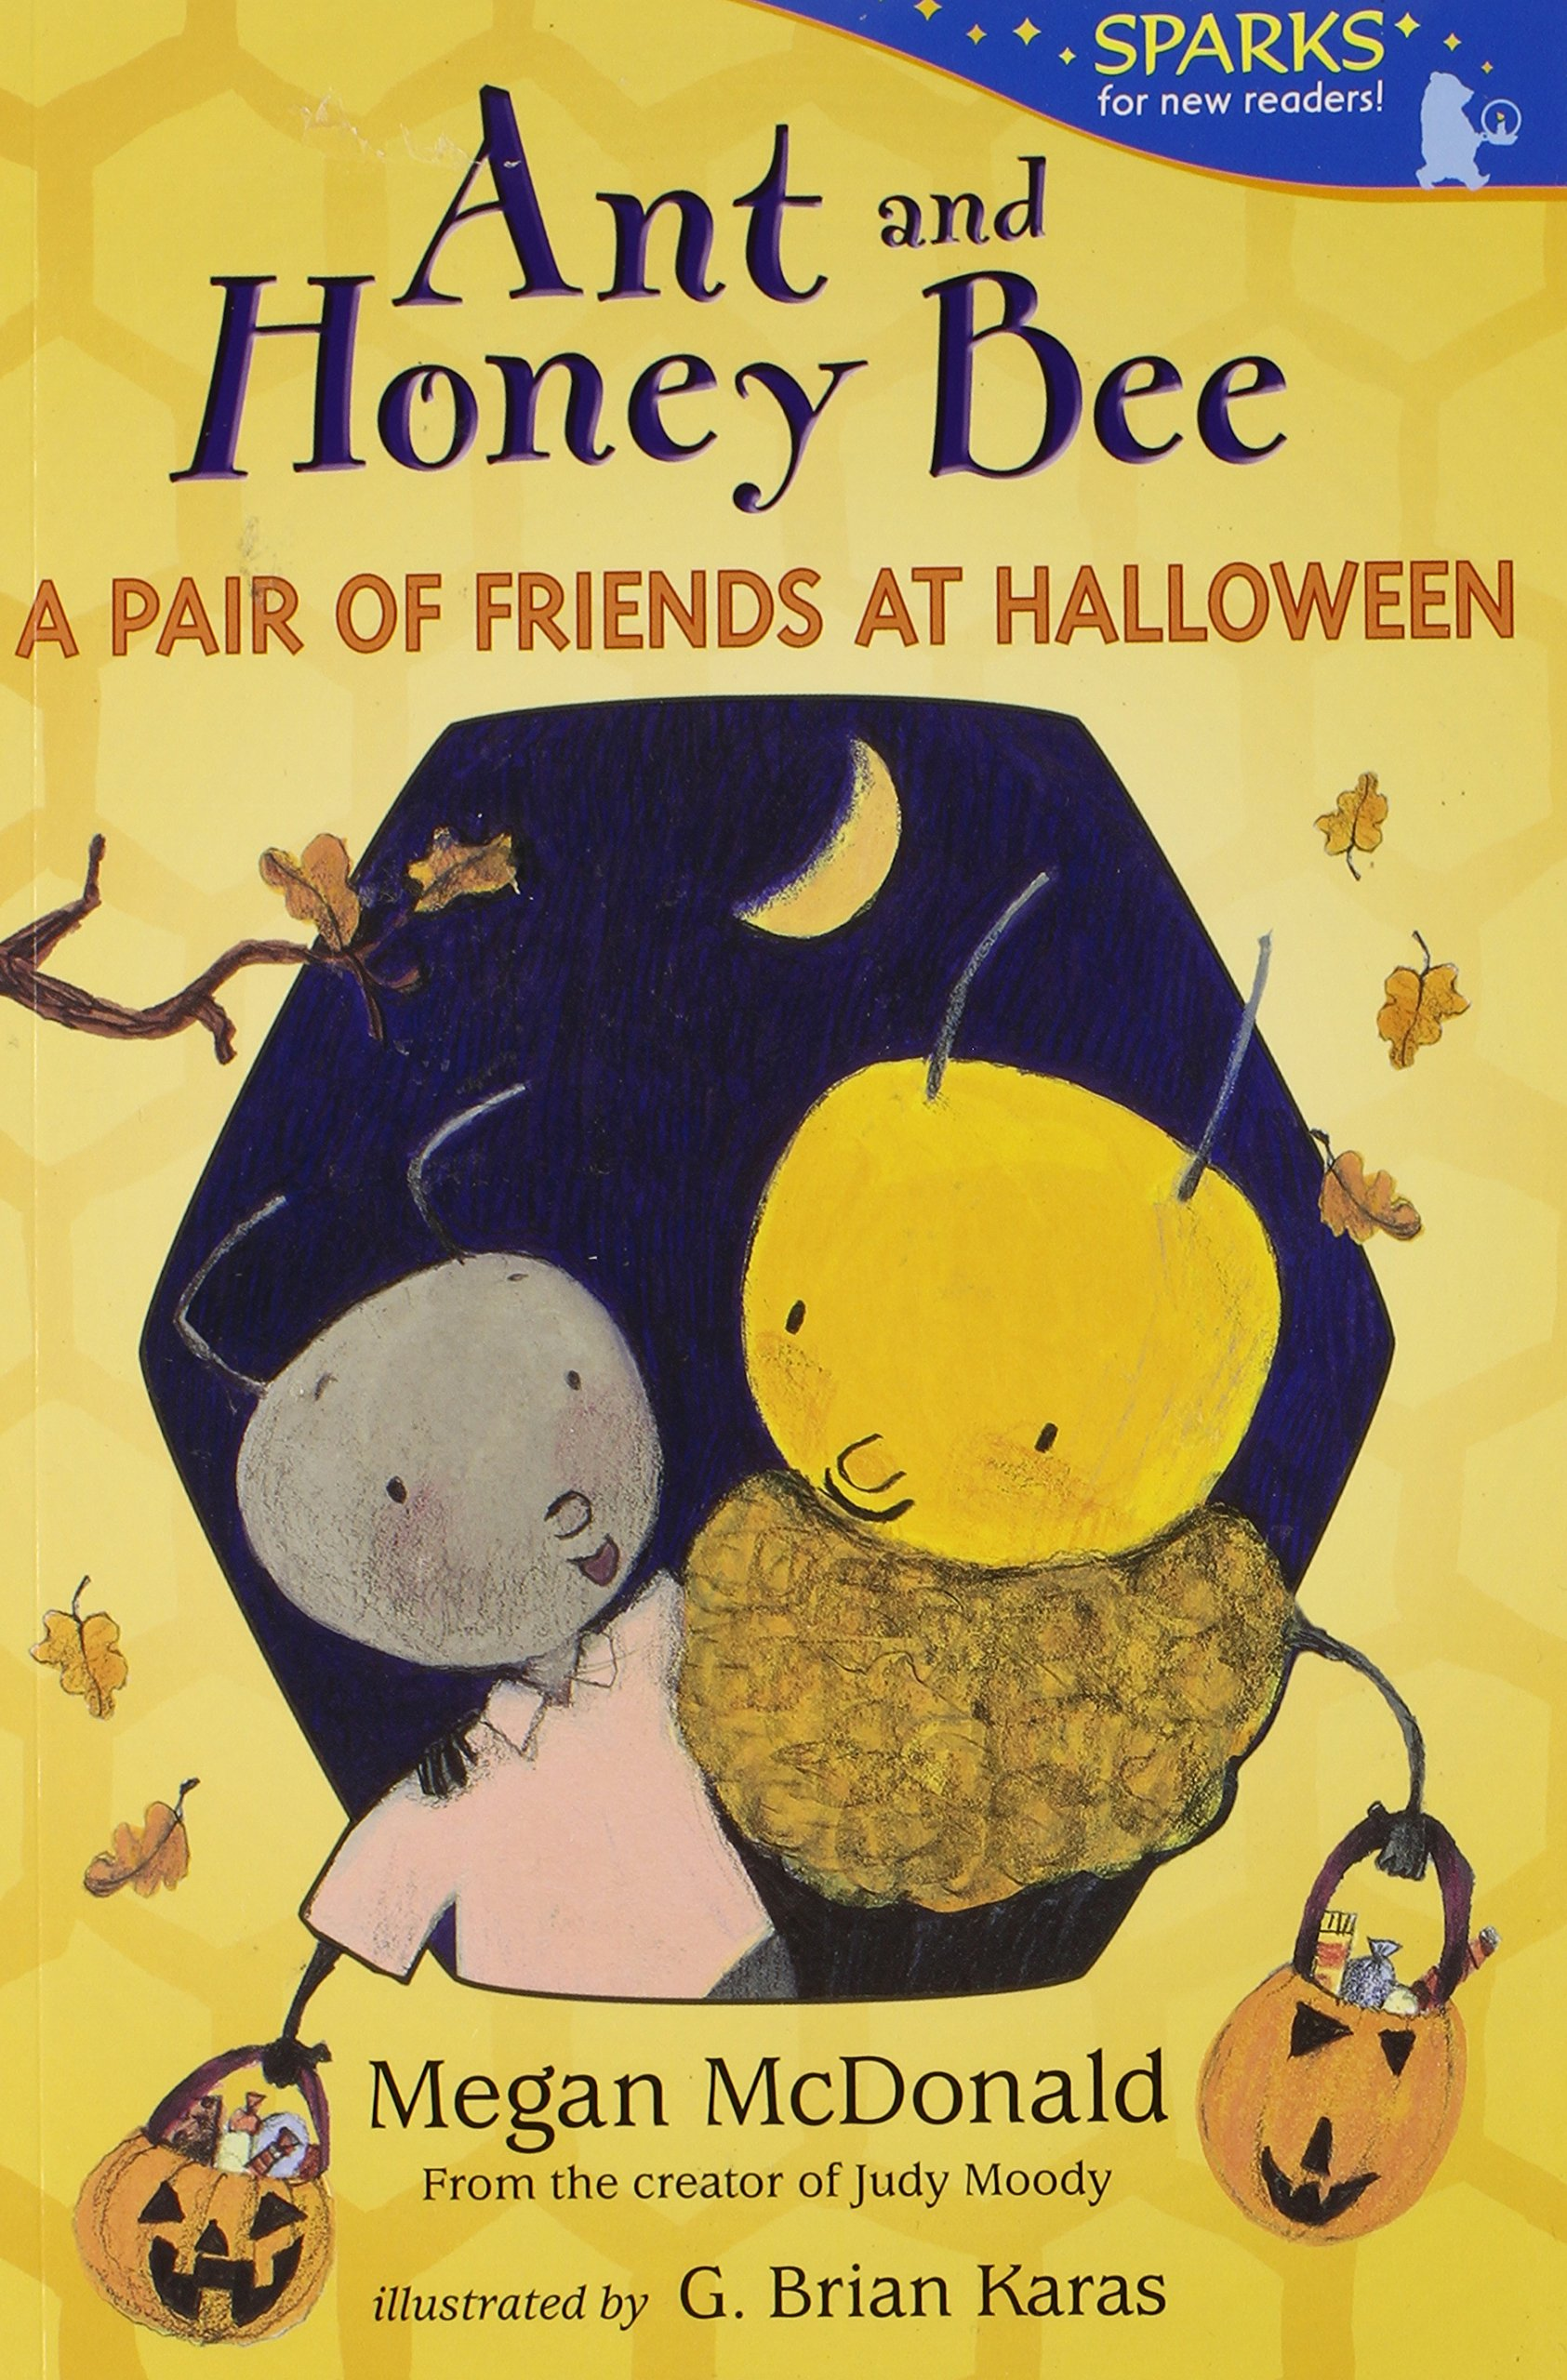 amazoncom ant and honey bee a pair of friends at halloween candlewick sparks 9780763668648 megan mcdonald g brian karas books - Judy Moody Halloween Costume